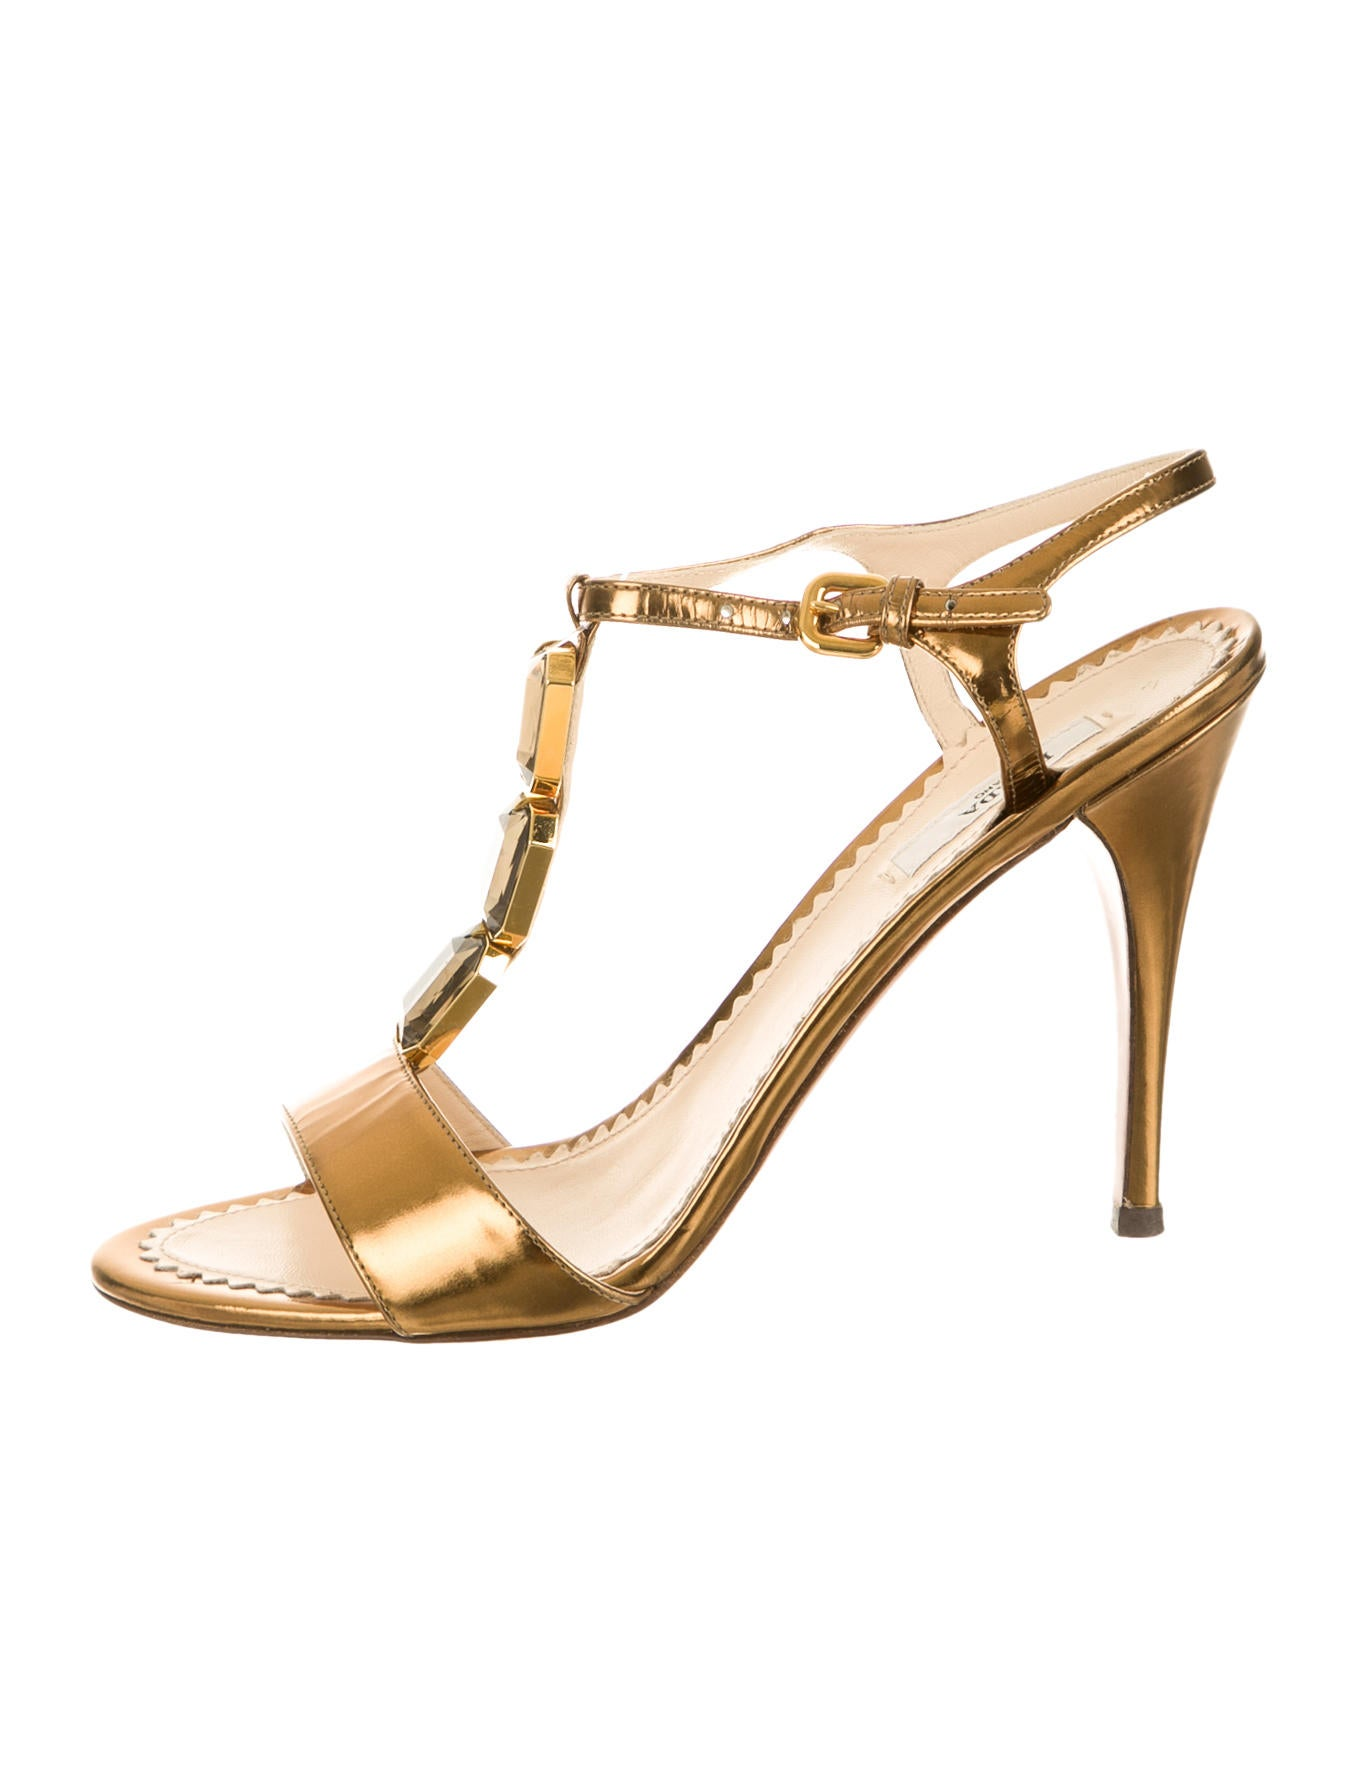 Elegant Find This Pin And More On  Gucci Shoes For Women, Such As Sandals, Boots And Sport, From The Latest Collection Find Authentic Gucci Shoes In Many Styles And Colors At Raffaello Network Online Store